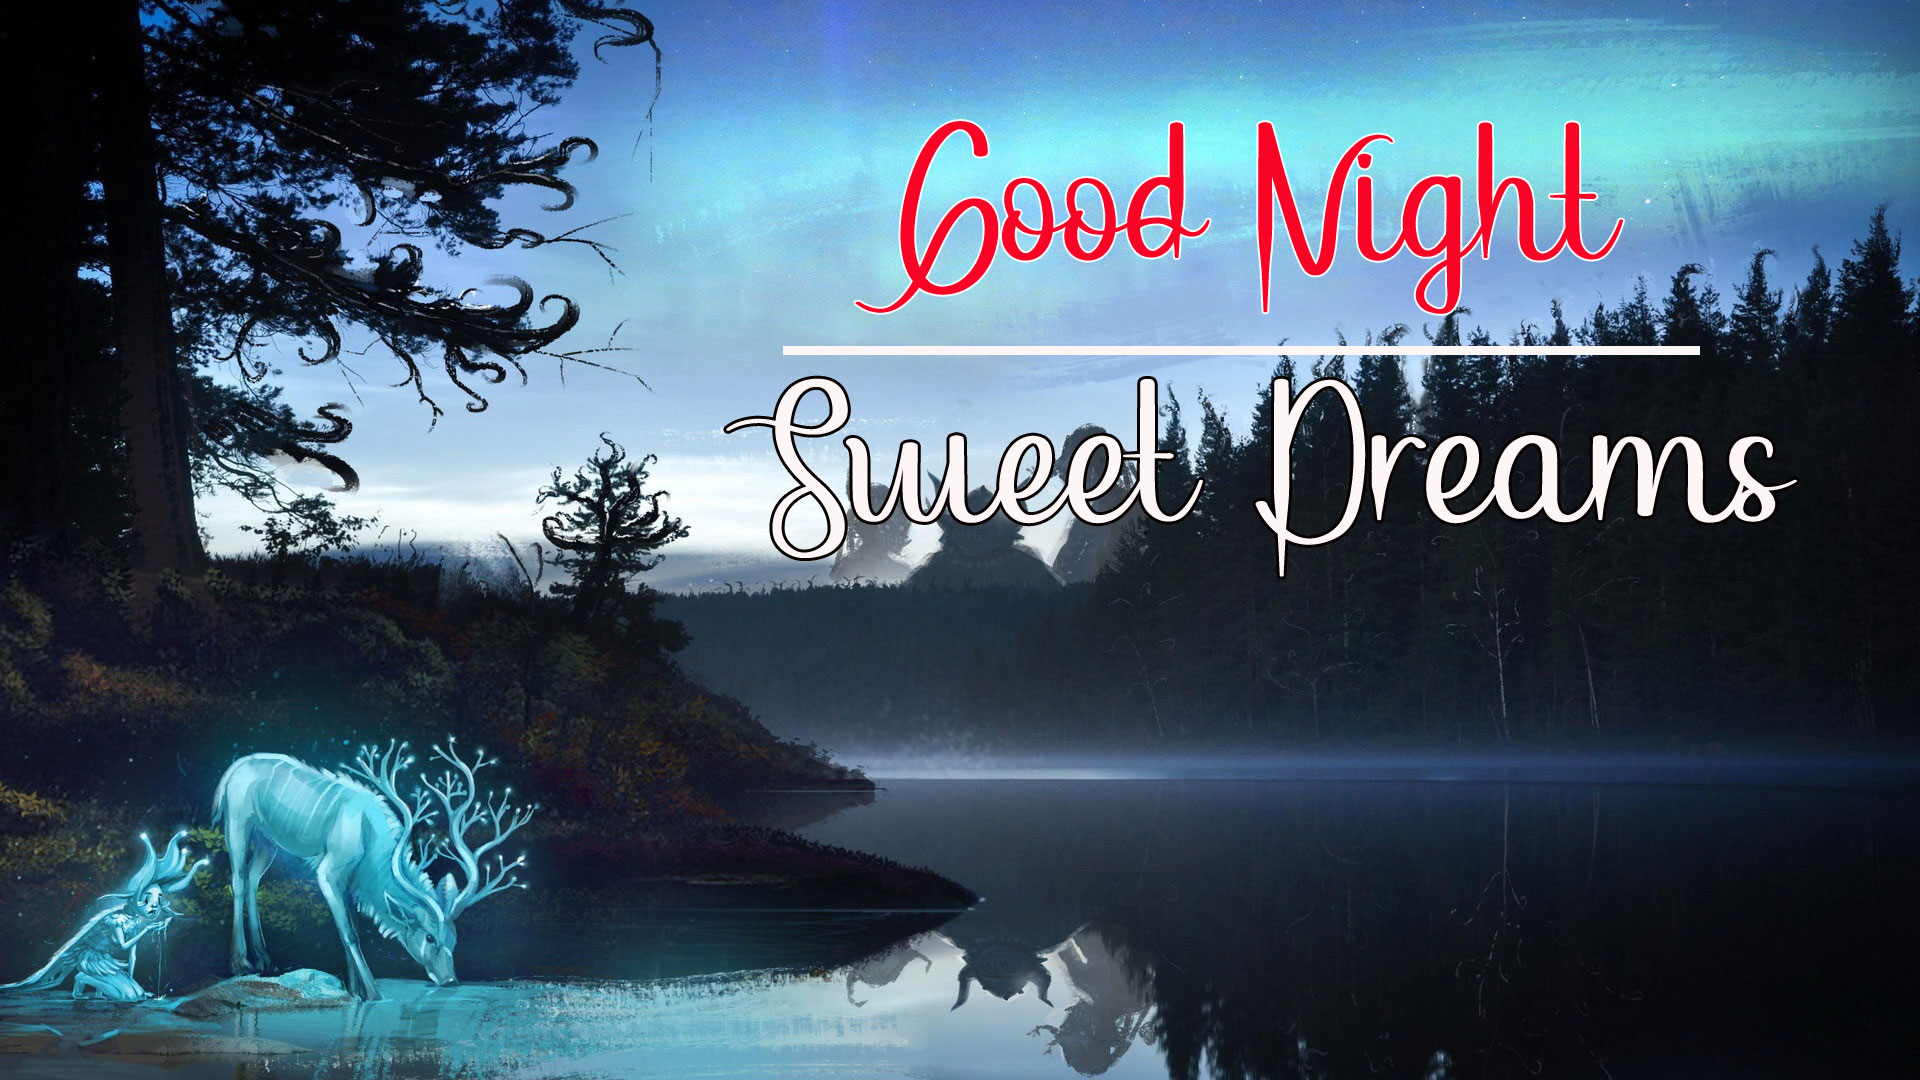 Beautiful New Good Night Images photo download